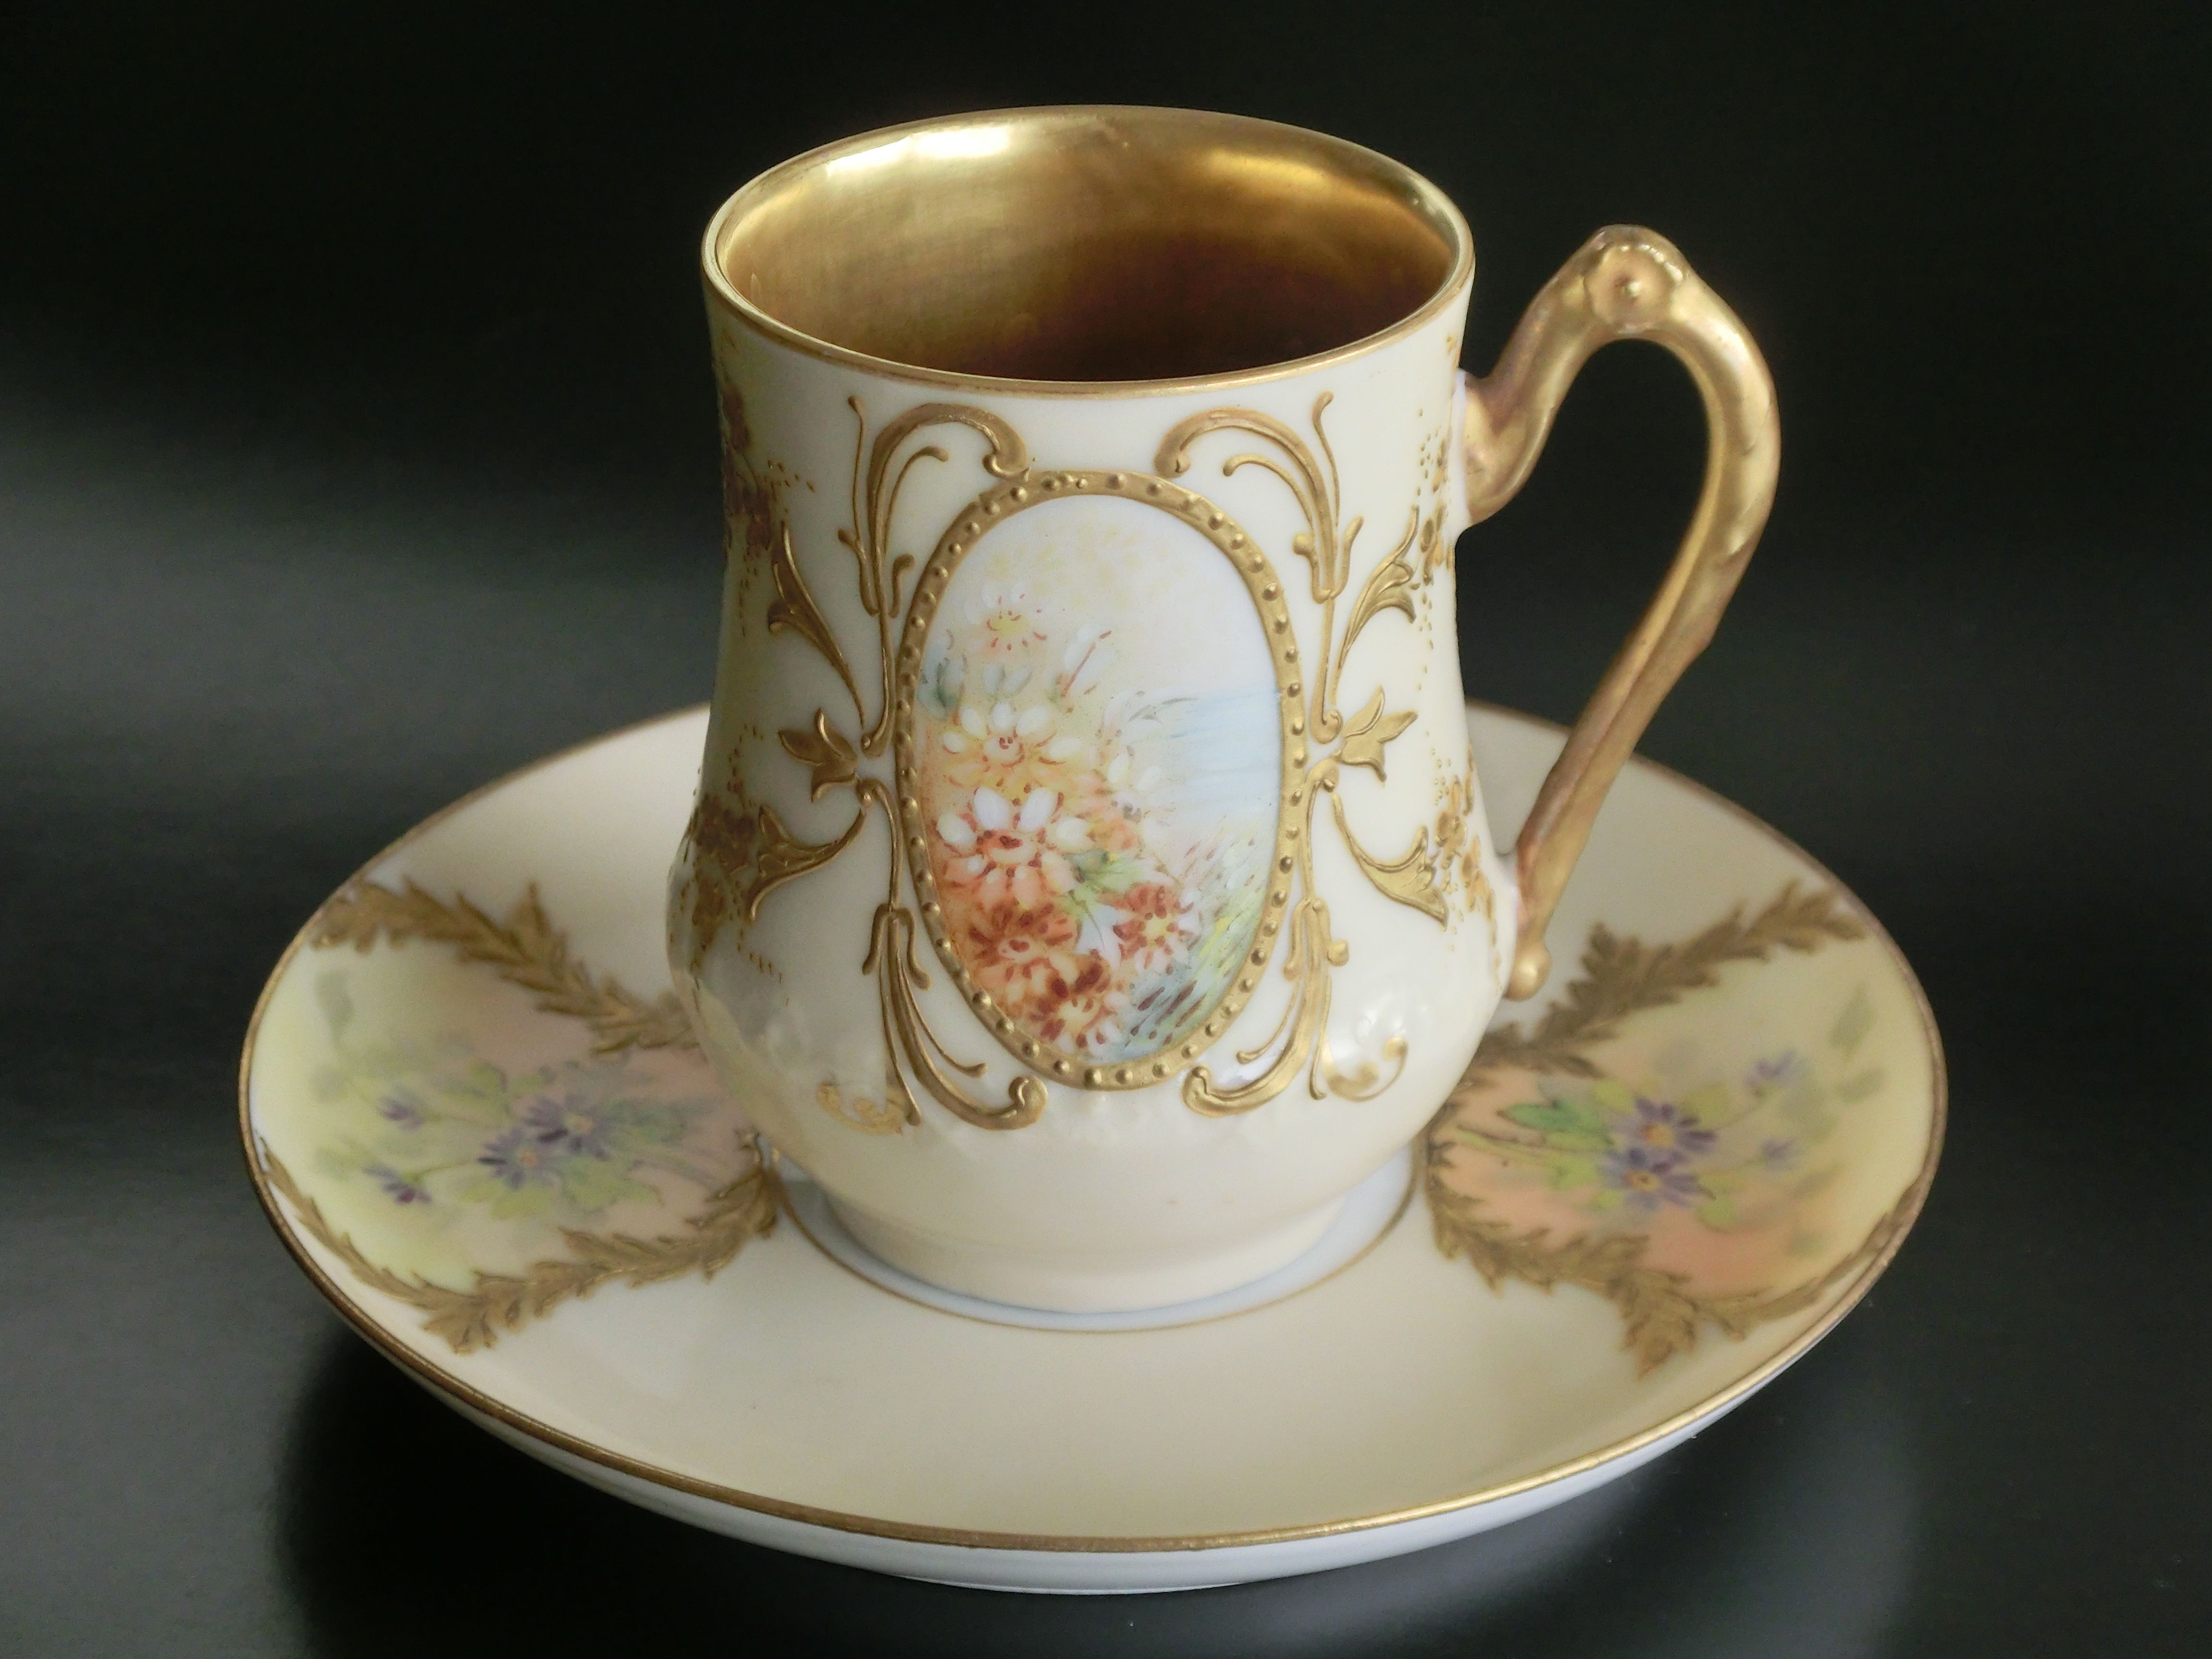 Limoges France For Raphael Weill U0026 Co., San Francisco Earlly 1900u0027s.  Antique Tea CupsVintage ...